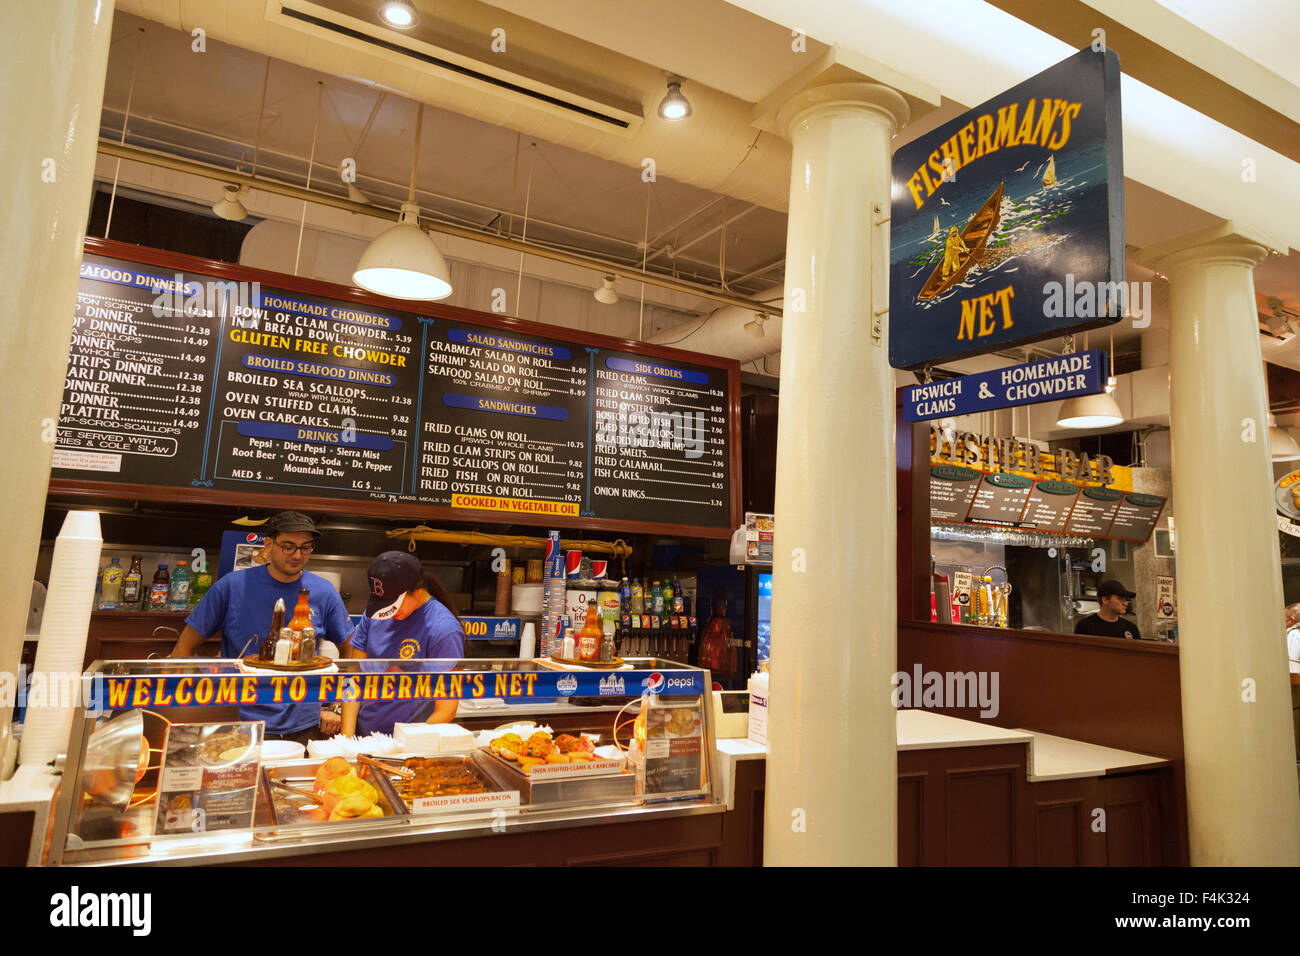 A seafood cafe in Quincy marketplace, Boston Massachusetts USA - Stock Image